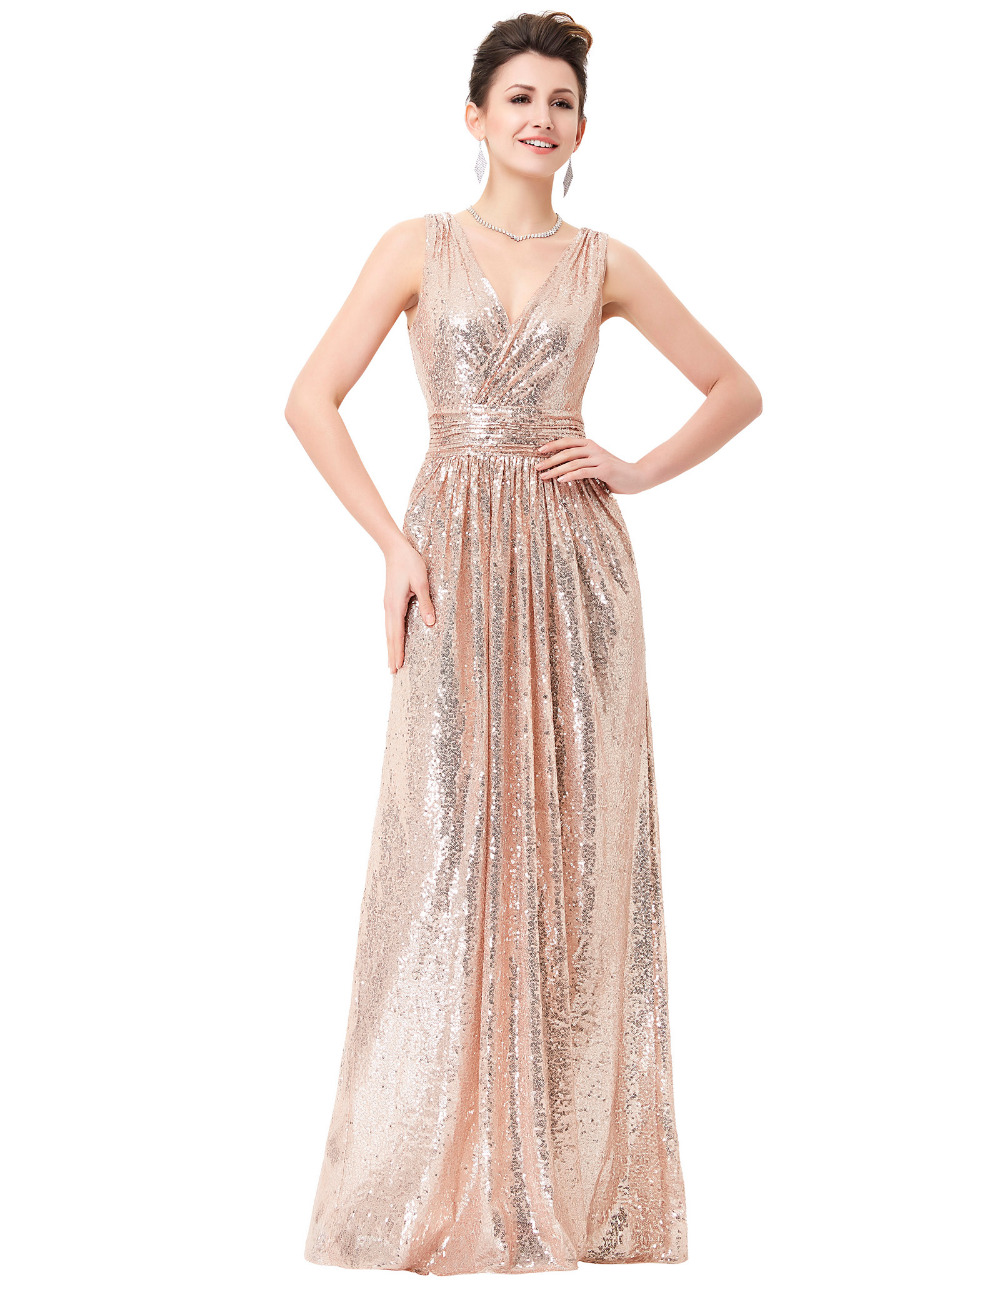 Buy Cheap scoop sequin wedding apparel Online, Time Limited, High Quality. CARTS() Special Occasion Dresses Prom Dresses; Prom Dresses; New Arrival Prom Dresses Sheath Scoop Mid-Length Sleeves Mother Of The Bride Dresses Sequins With Beading. US$ US$ Reviews: (0)